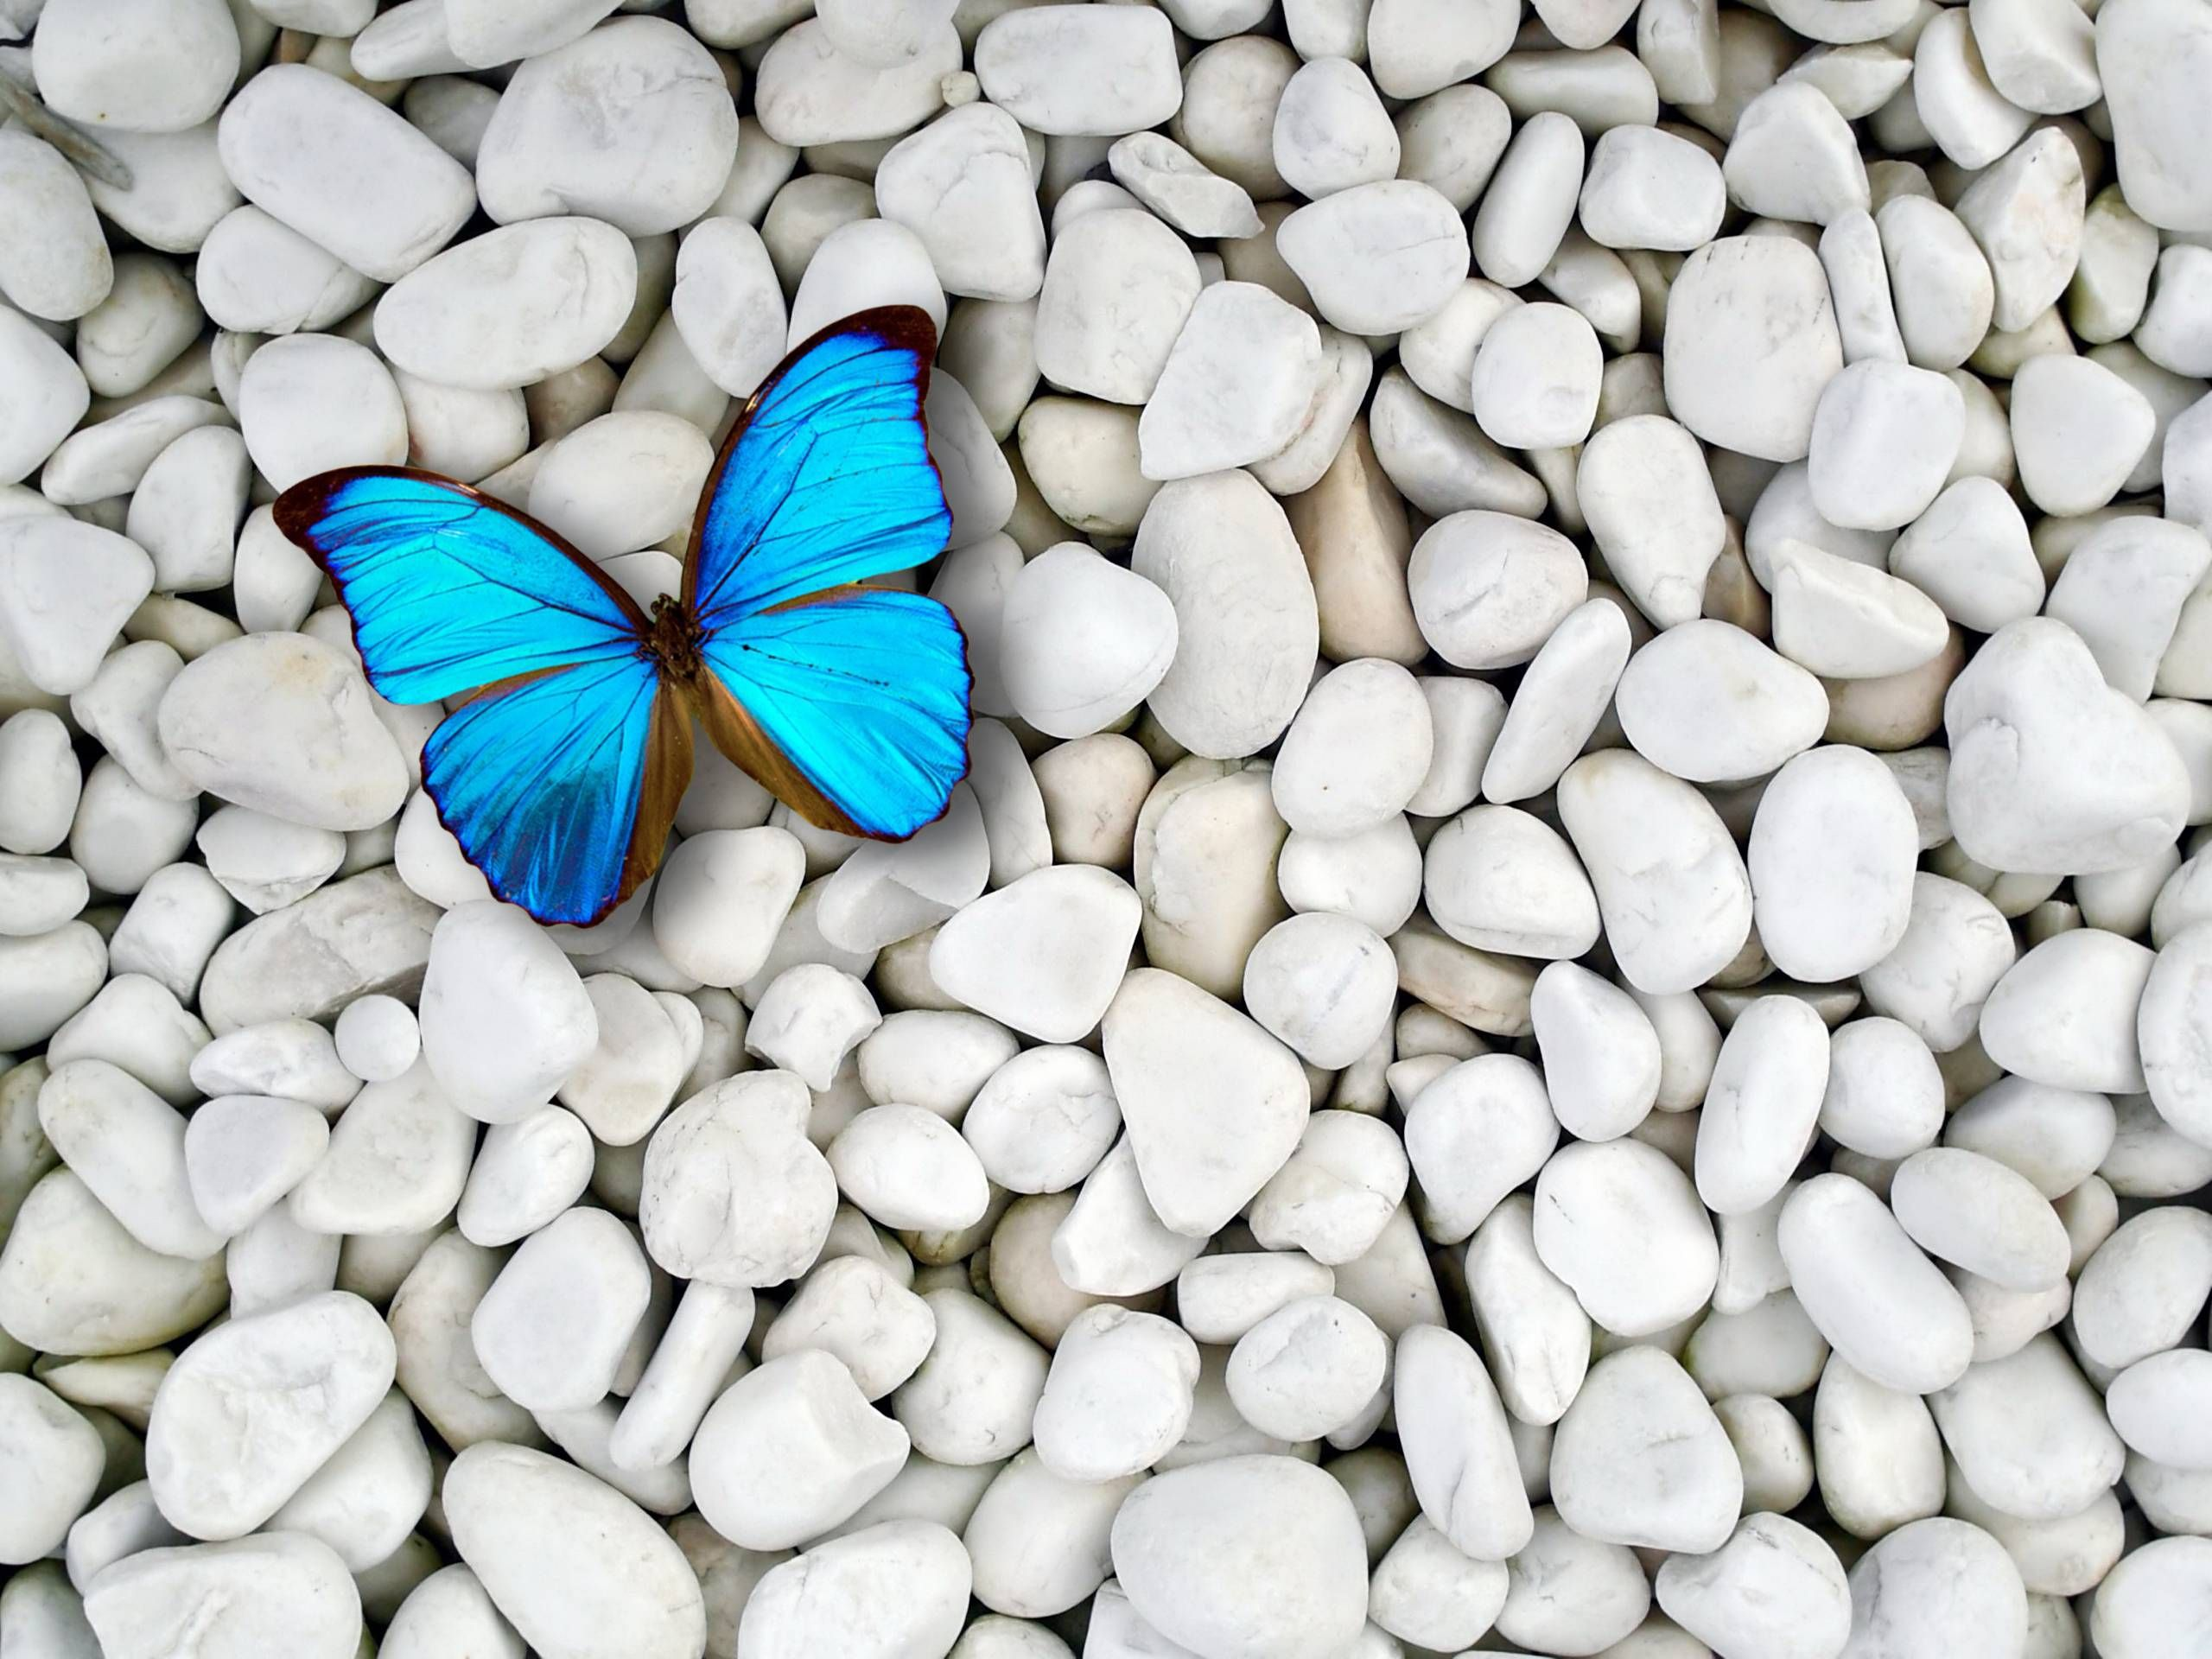 Blue Butterfly Wallpapers Free With High Definition Wallpaper 2560x1920 Px 386 22 Butterfly Wallpaper Blue Butterfly Wallpaper Butterfly Wallpaper Backgrounds